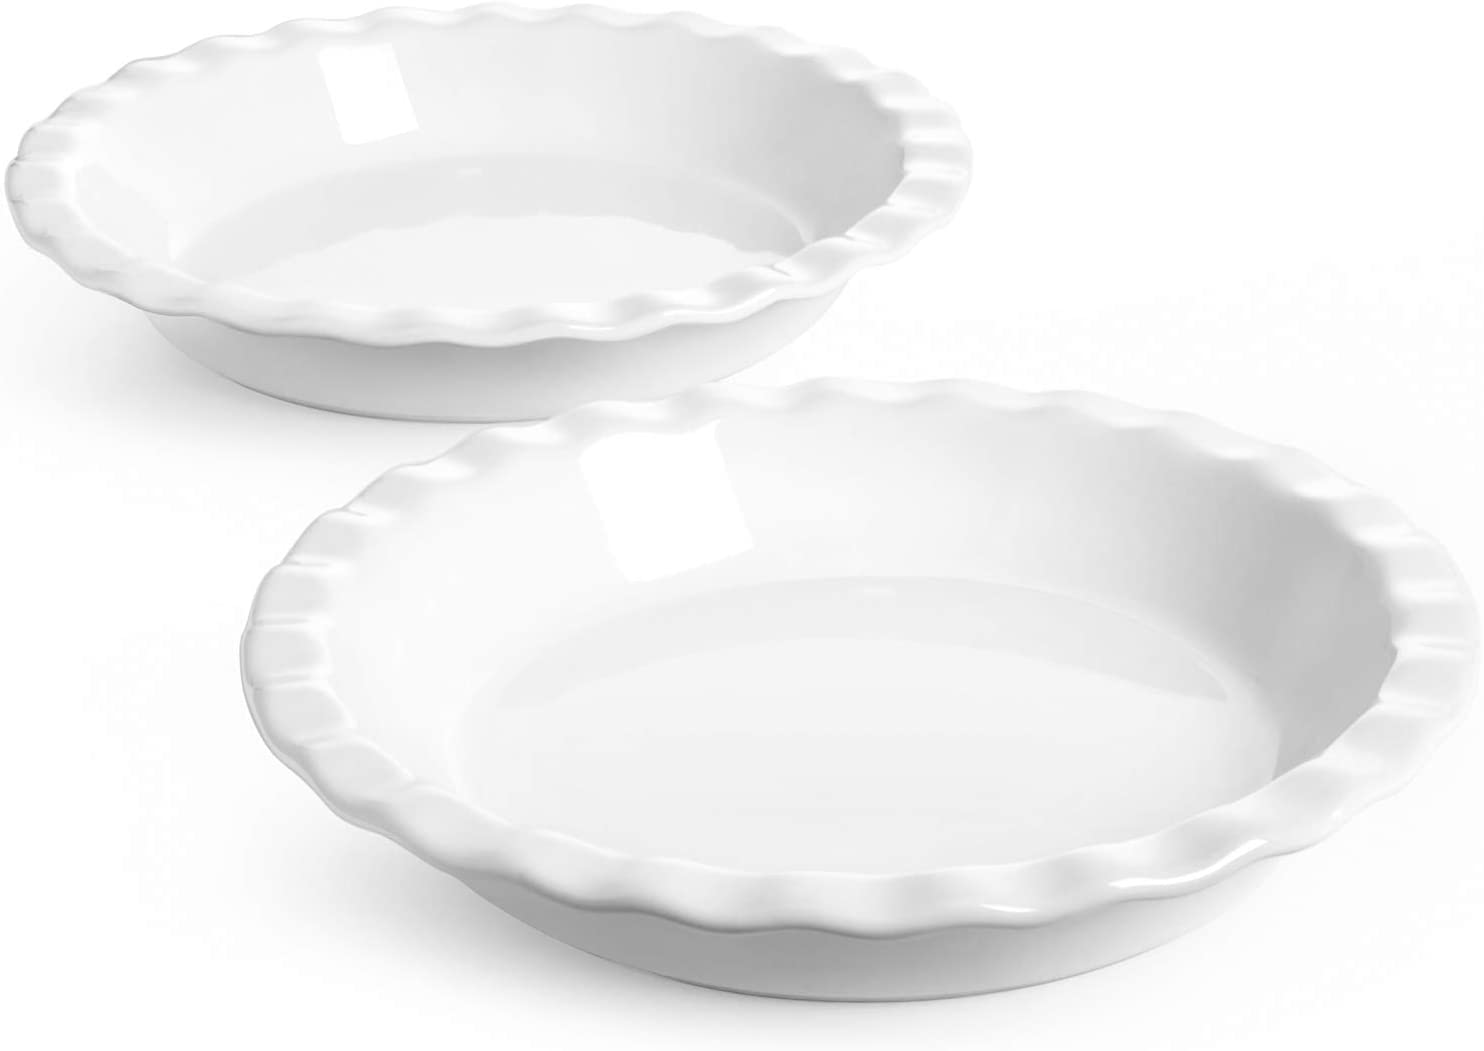 LE TAUCI Ceramic Pie Pans for Baking, 9 Inches Pie Plate for Apple Pie, Pecan Pie, 36 Ounce Deep Dish Pie Pan, Set of 2, White